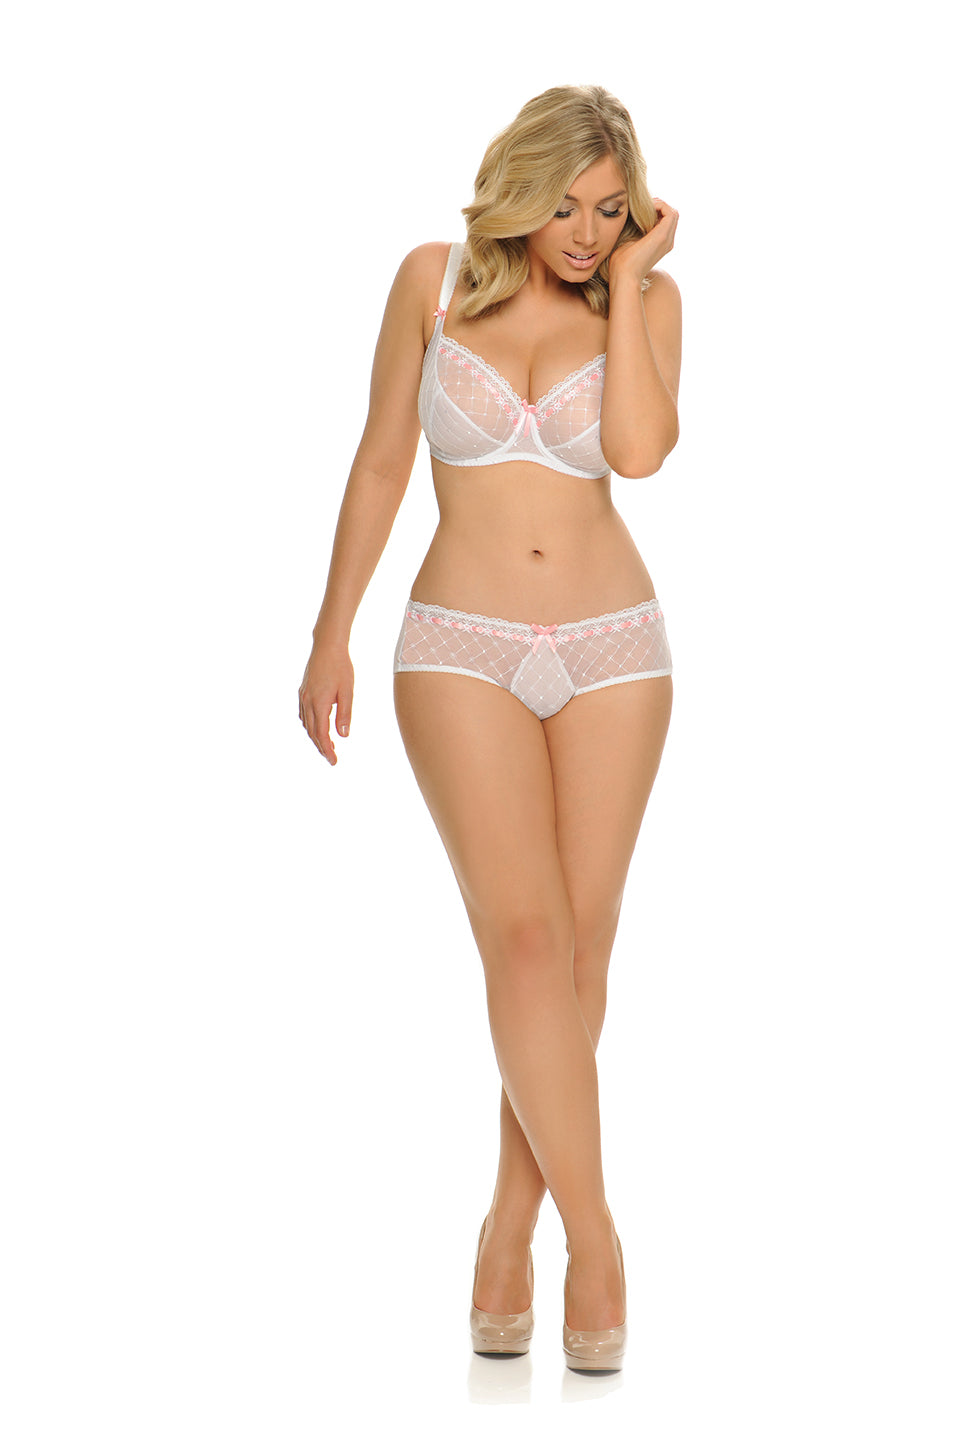 Curvy Kate Portia Short in Pink and White